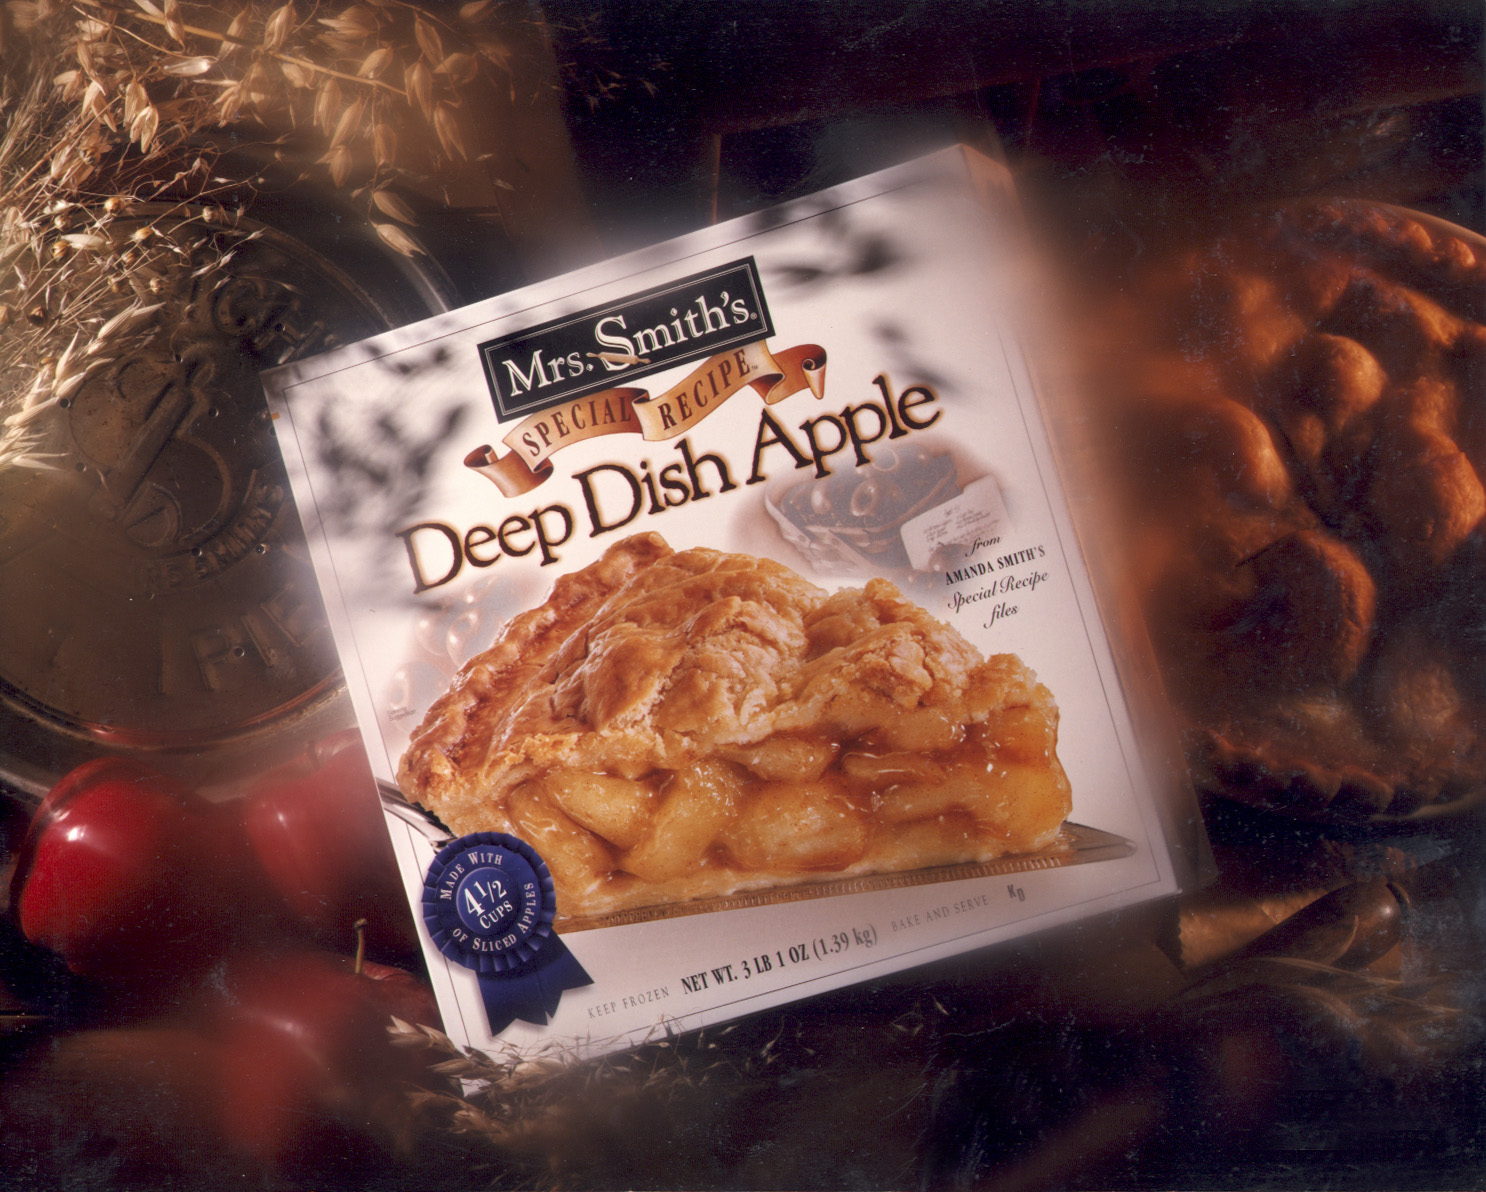 Mrs. Smith's Deep Dish Apple Pie Packaging